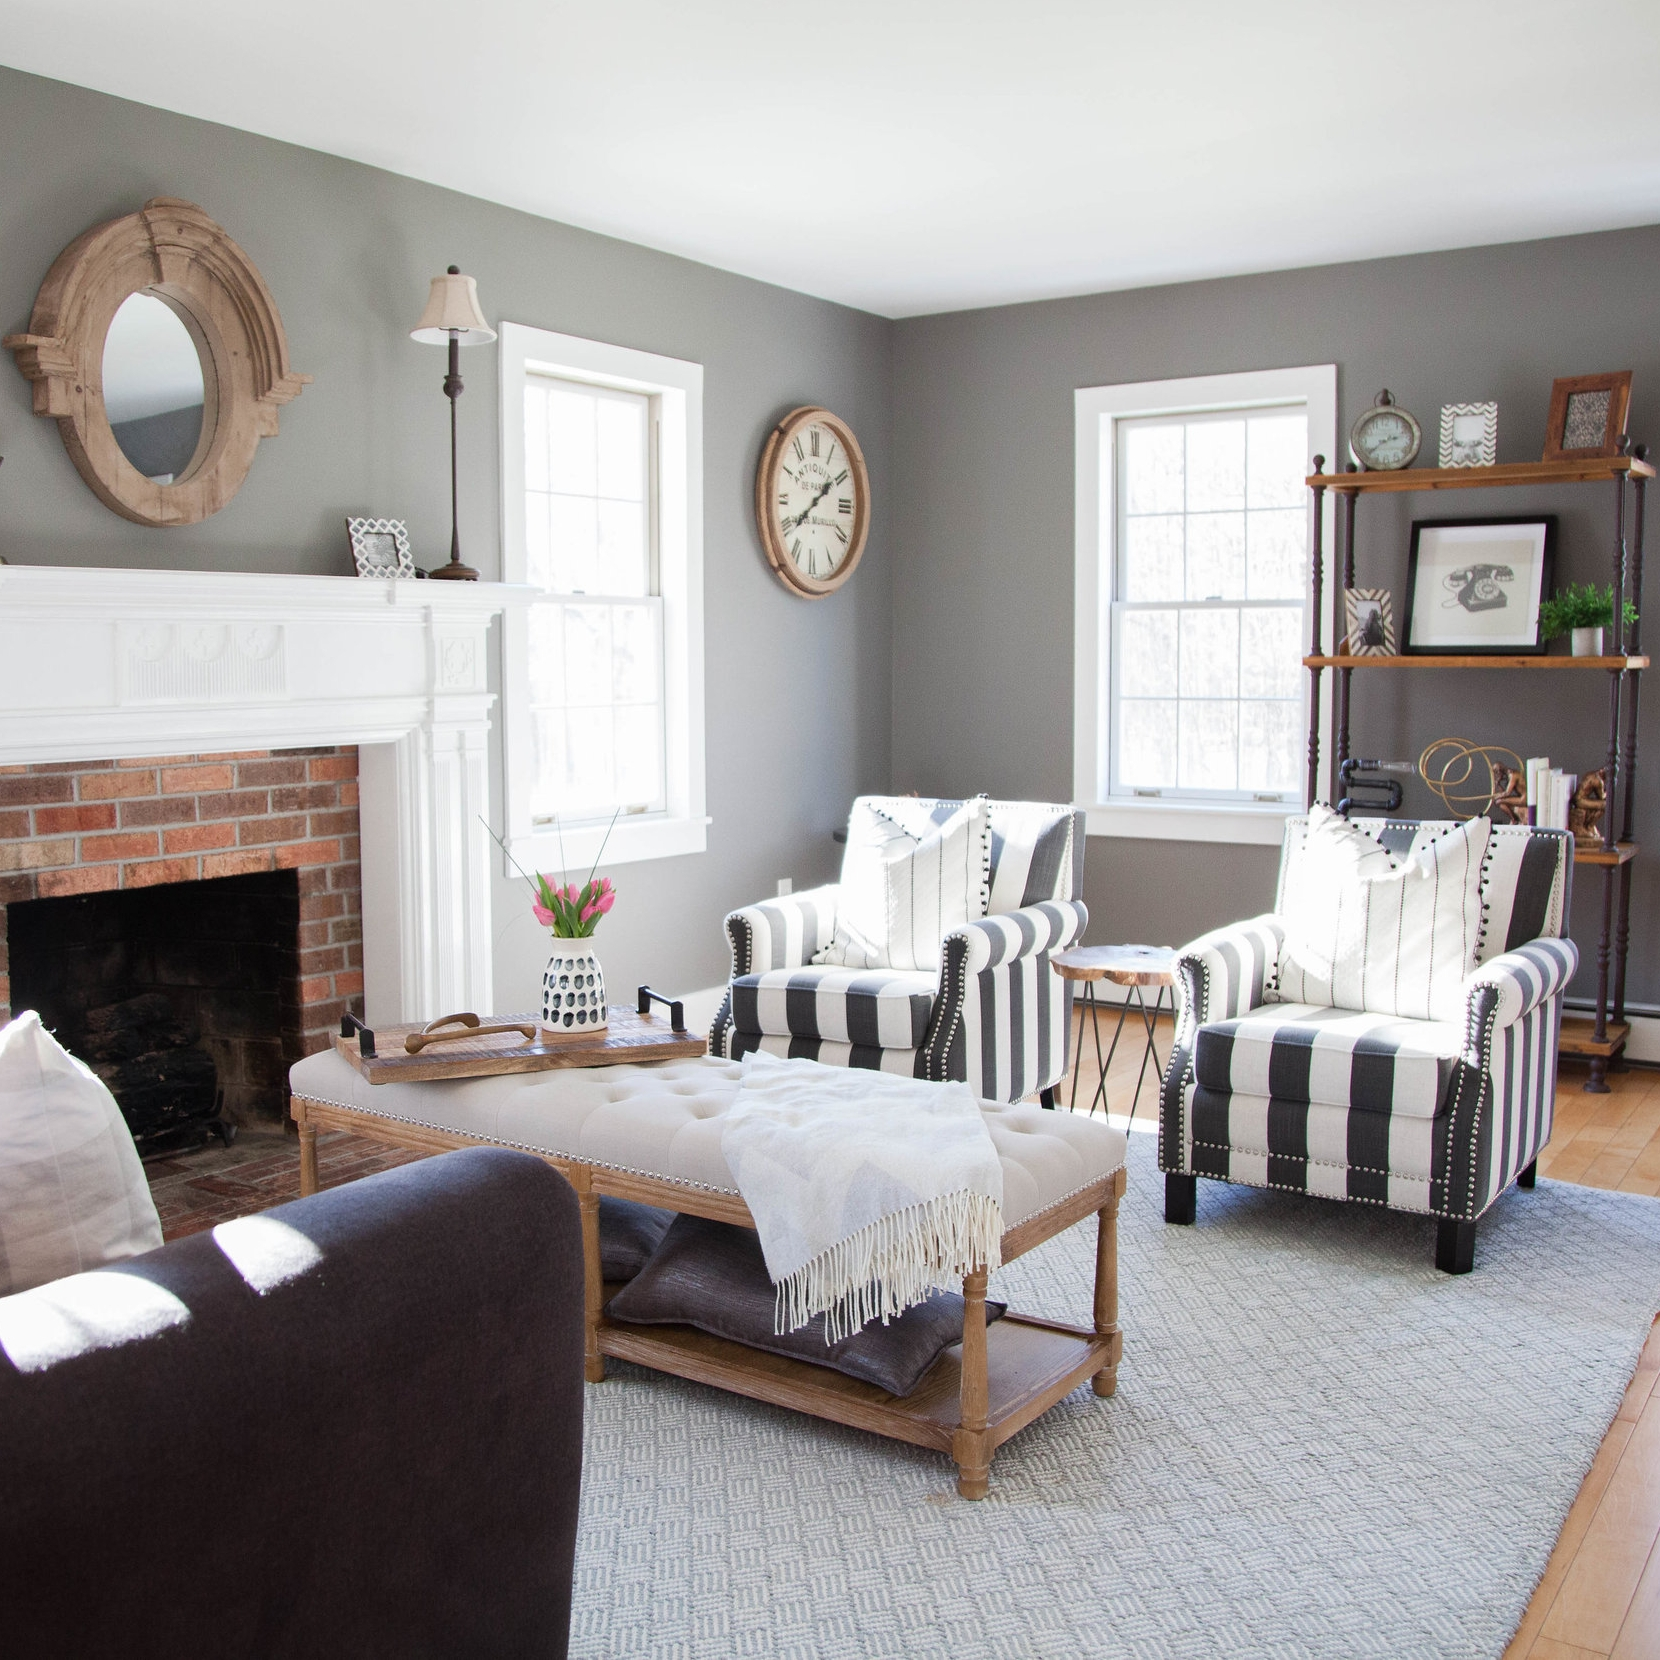 Living room sitting area with chairs and couch, plus exposed brick fireplace